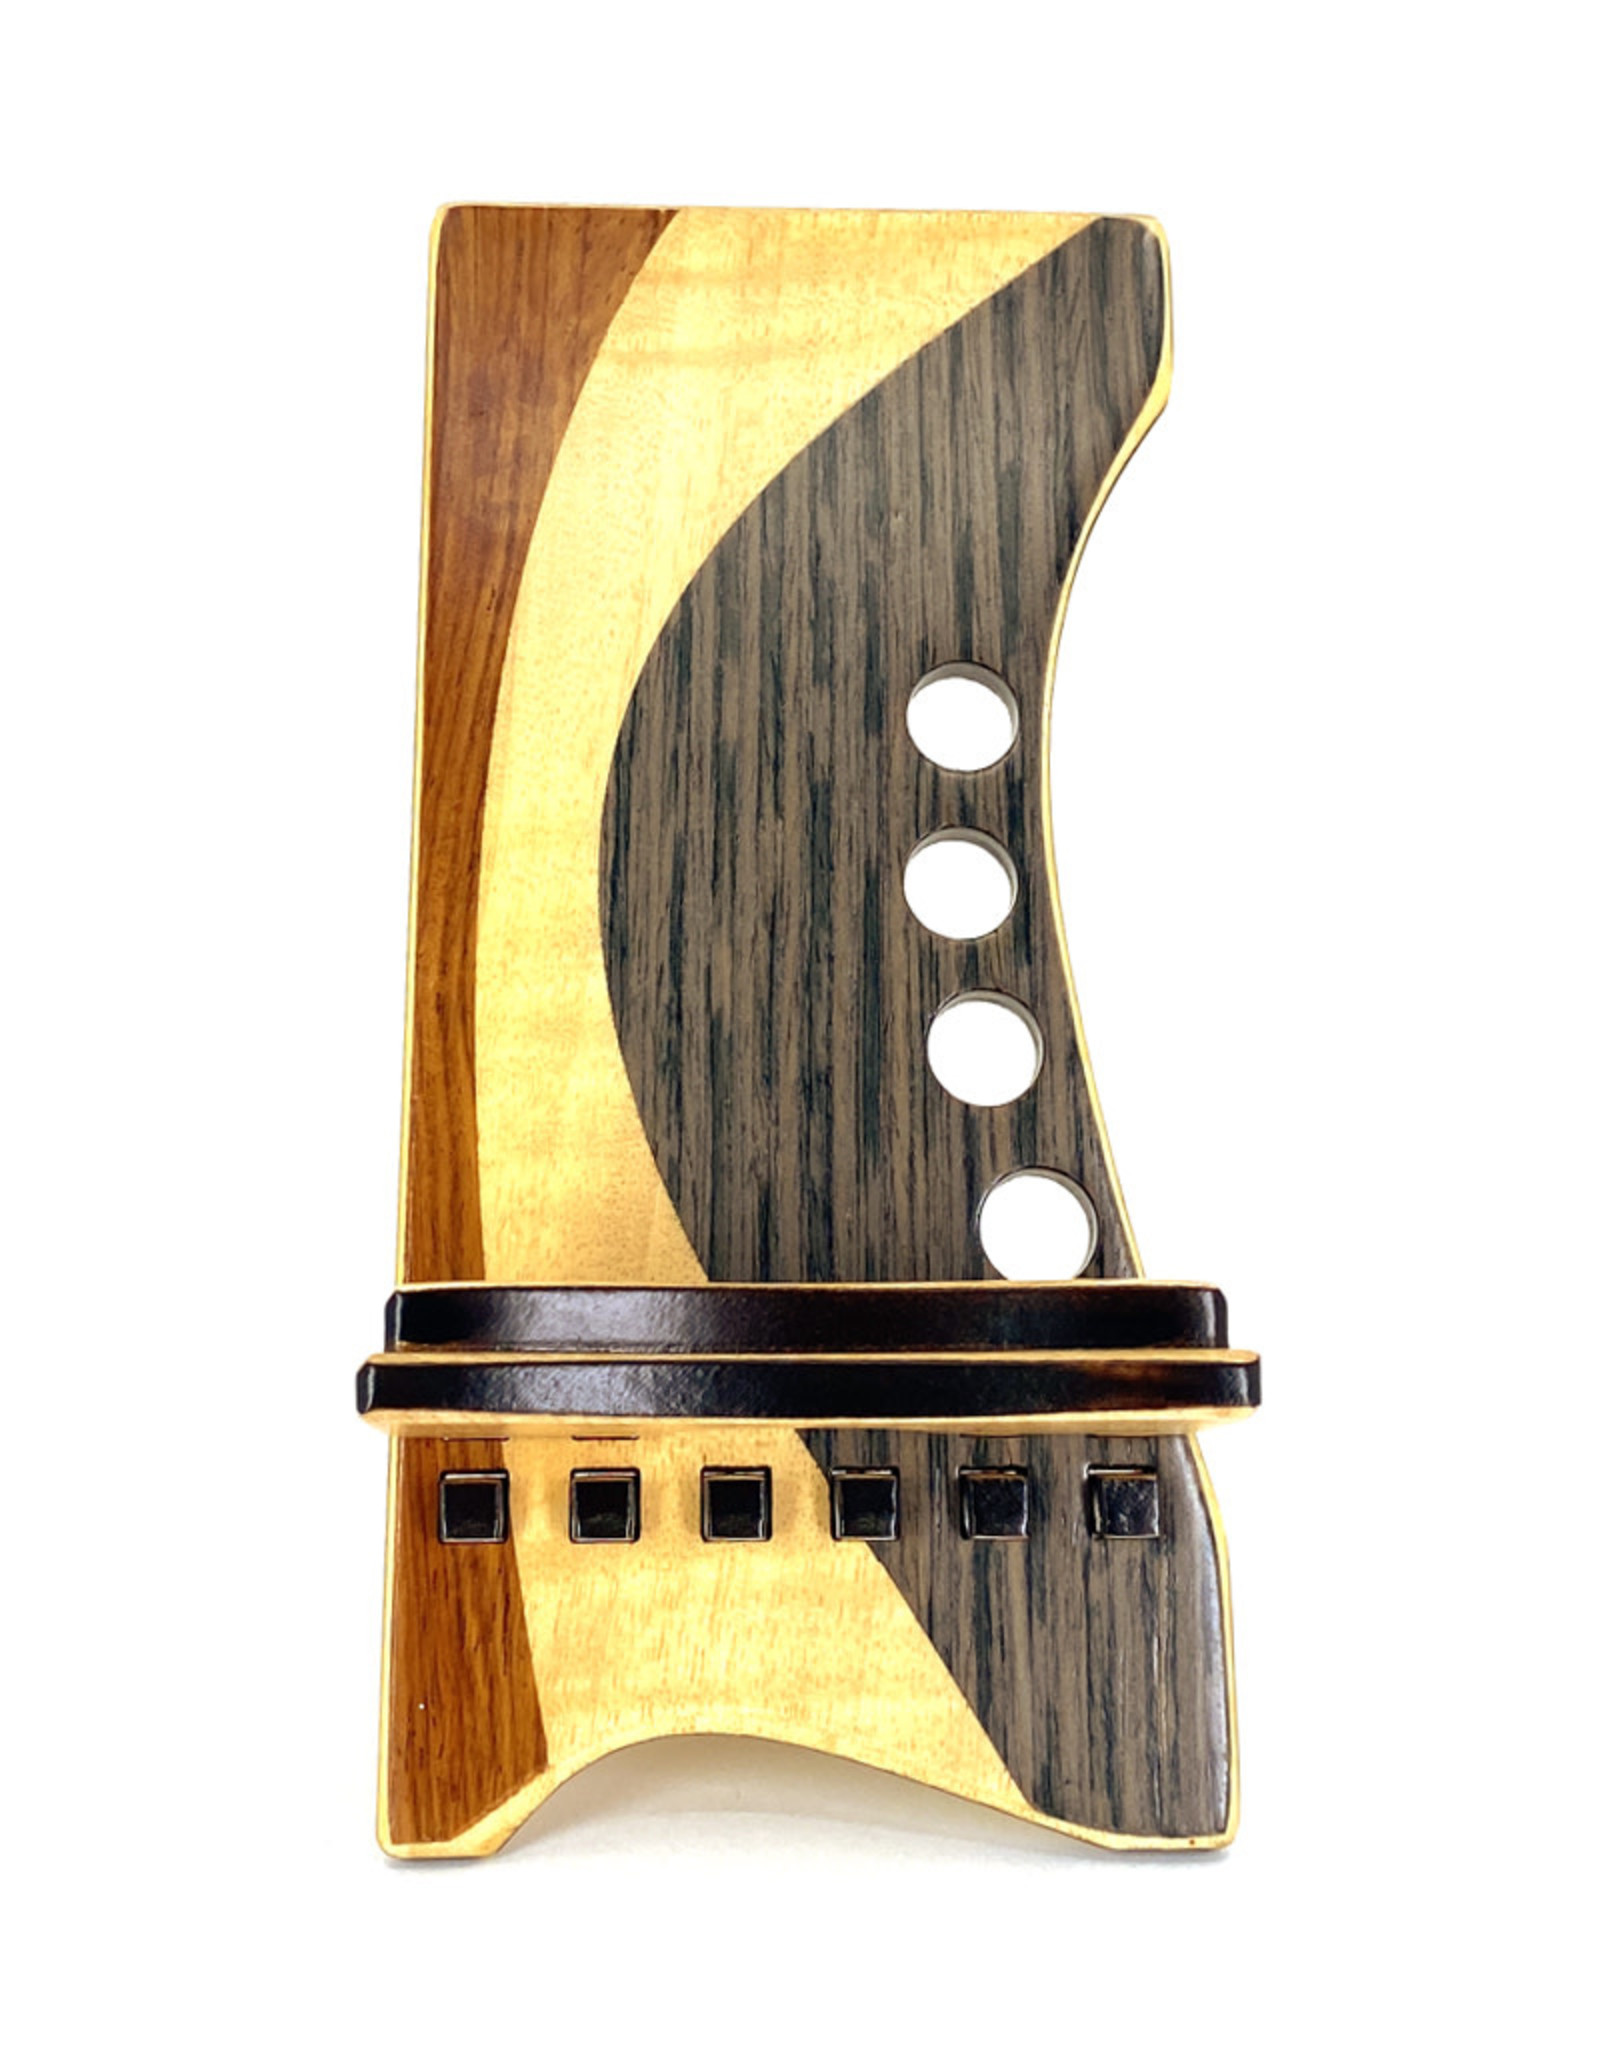 LOST ART WOODWORKS NATURAL WOOD X MARQUETRY INLAID PHONE STAND